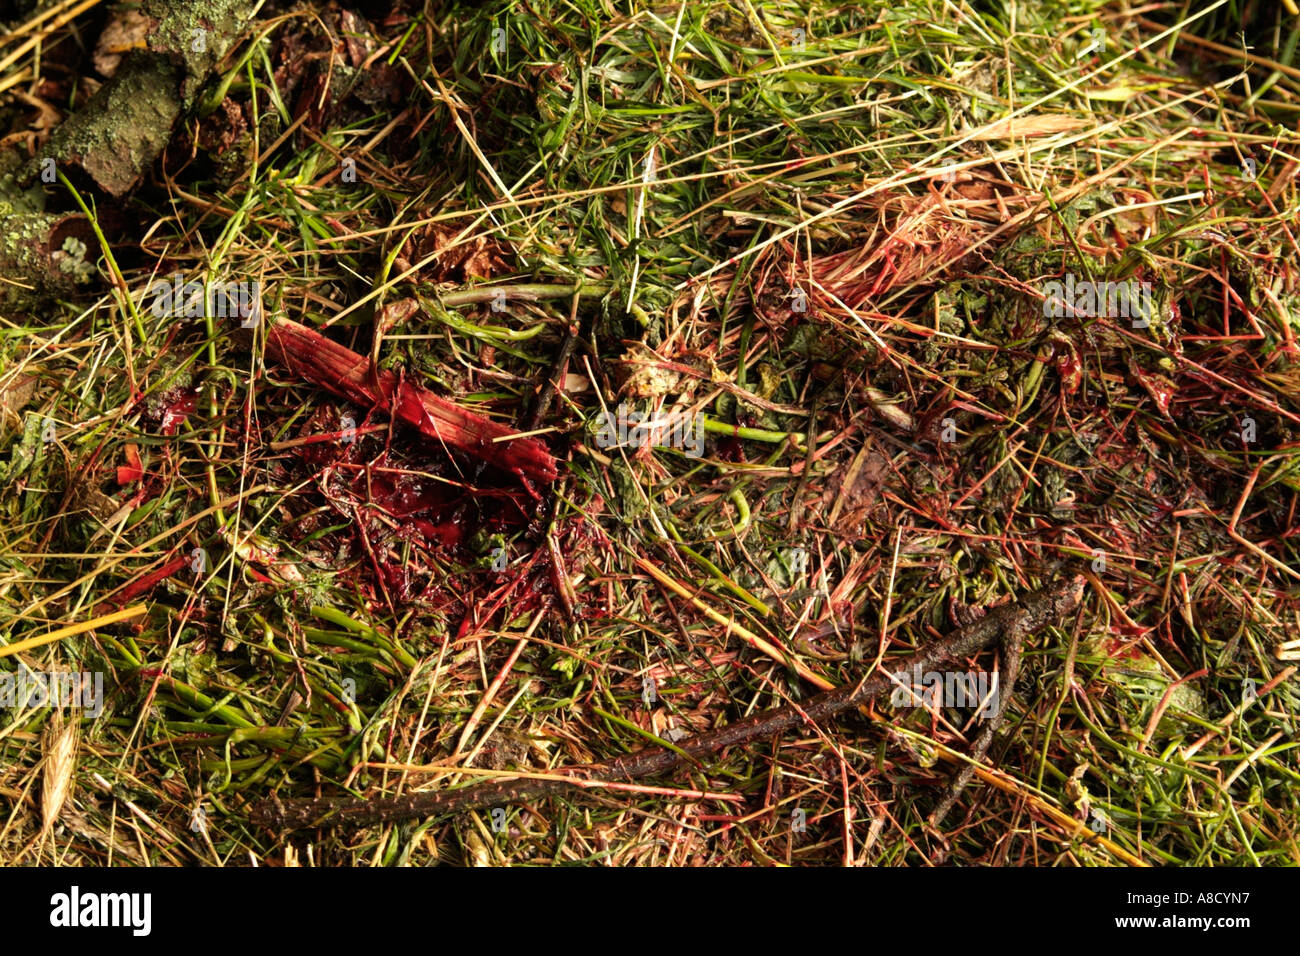 blood in the grass after killing a pig in rural portugal